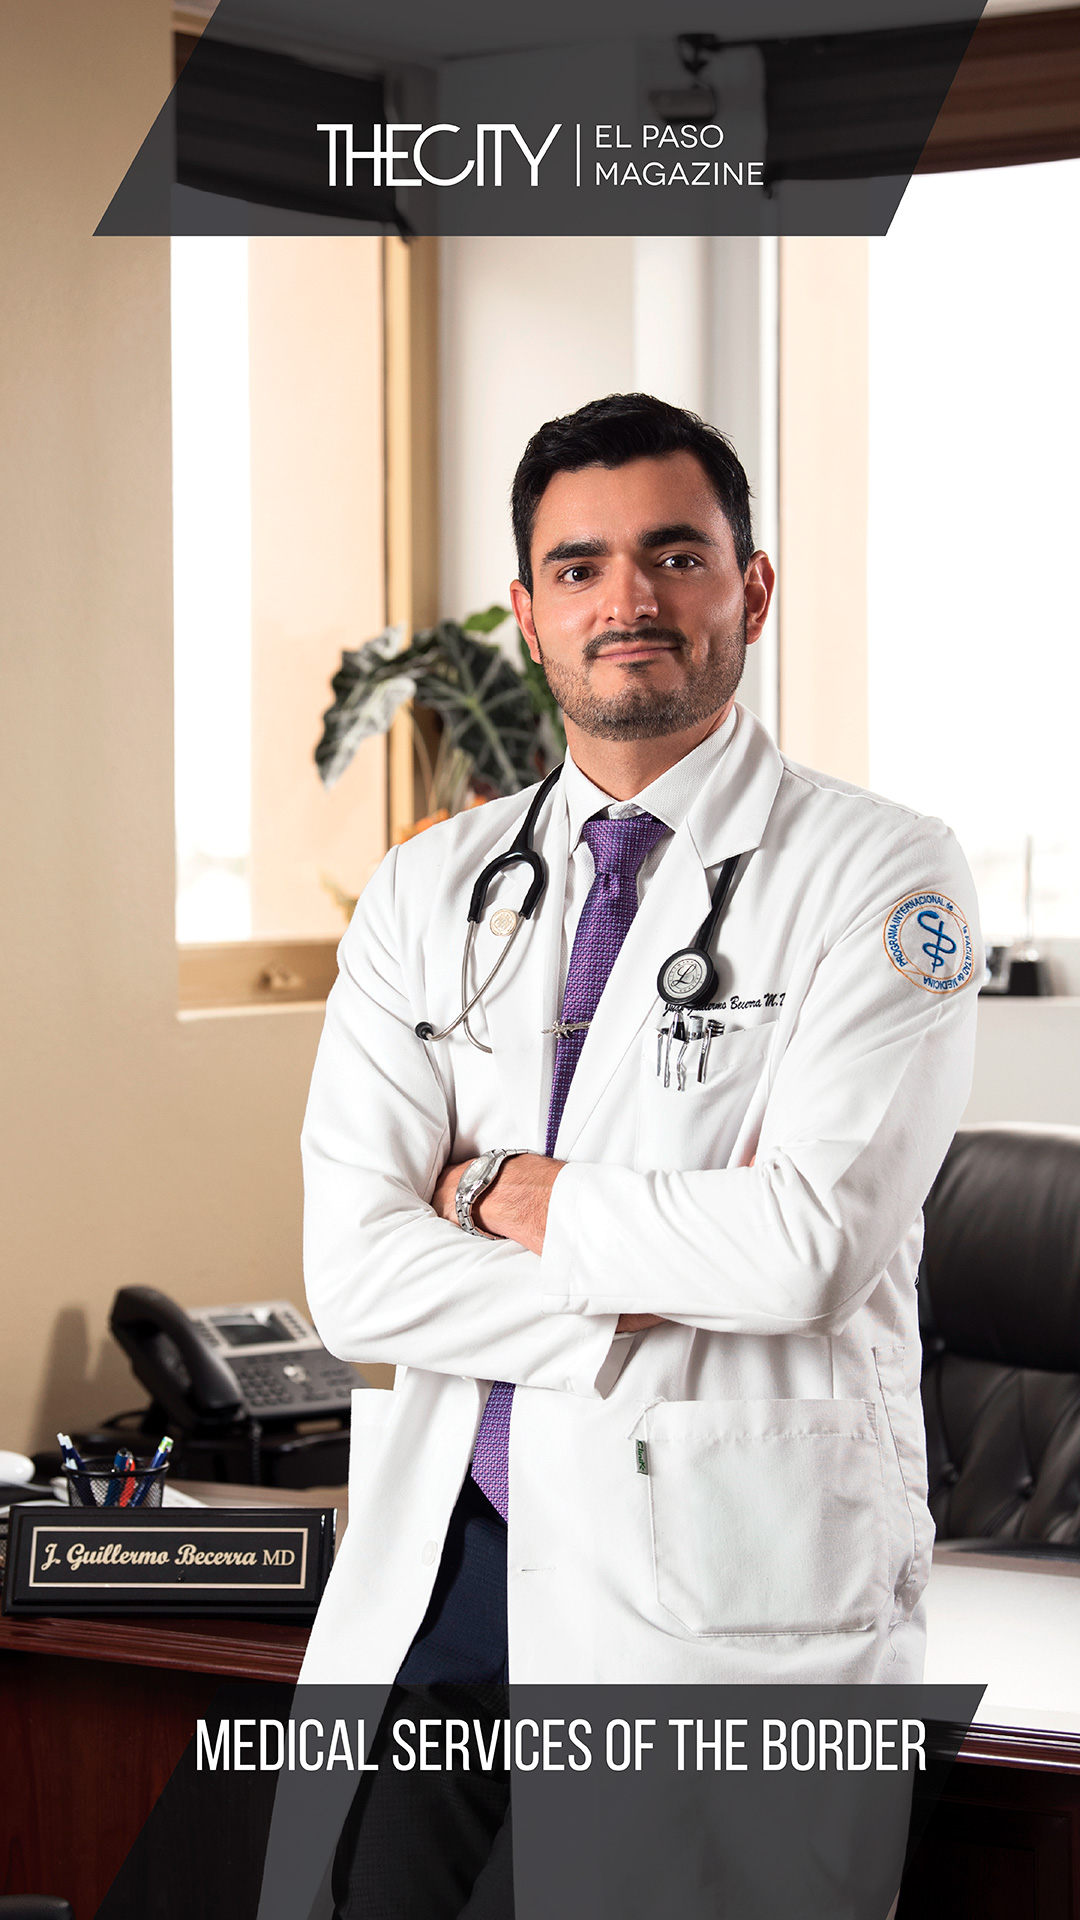 Healthcare Professionals: Medical Services of the border